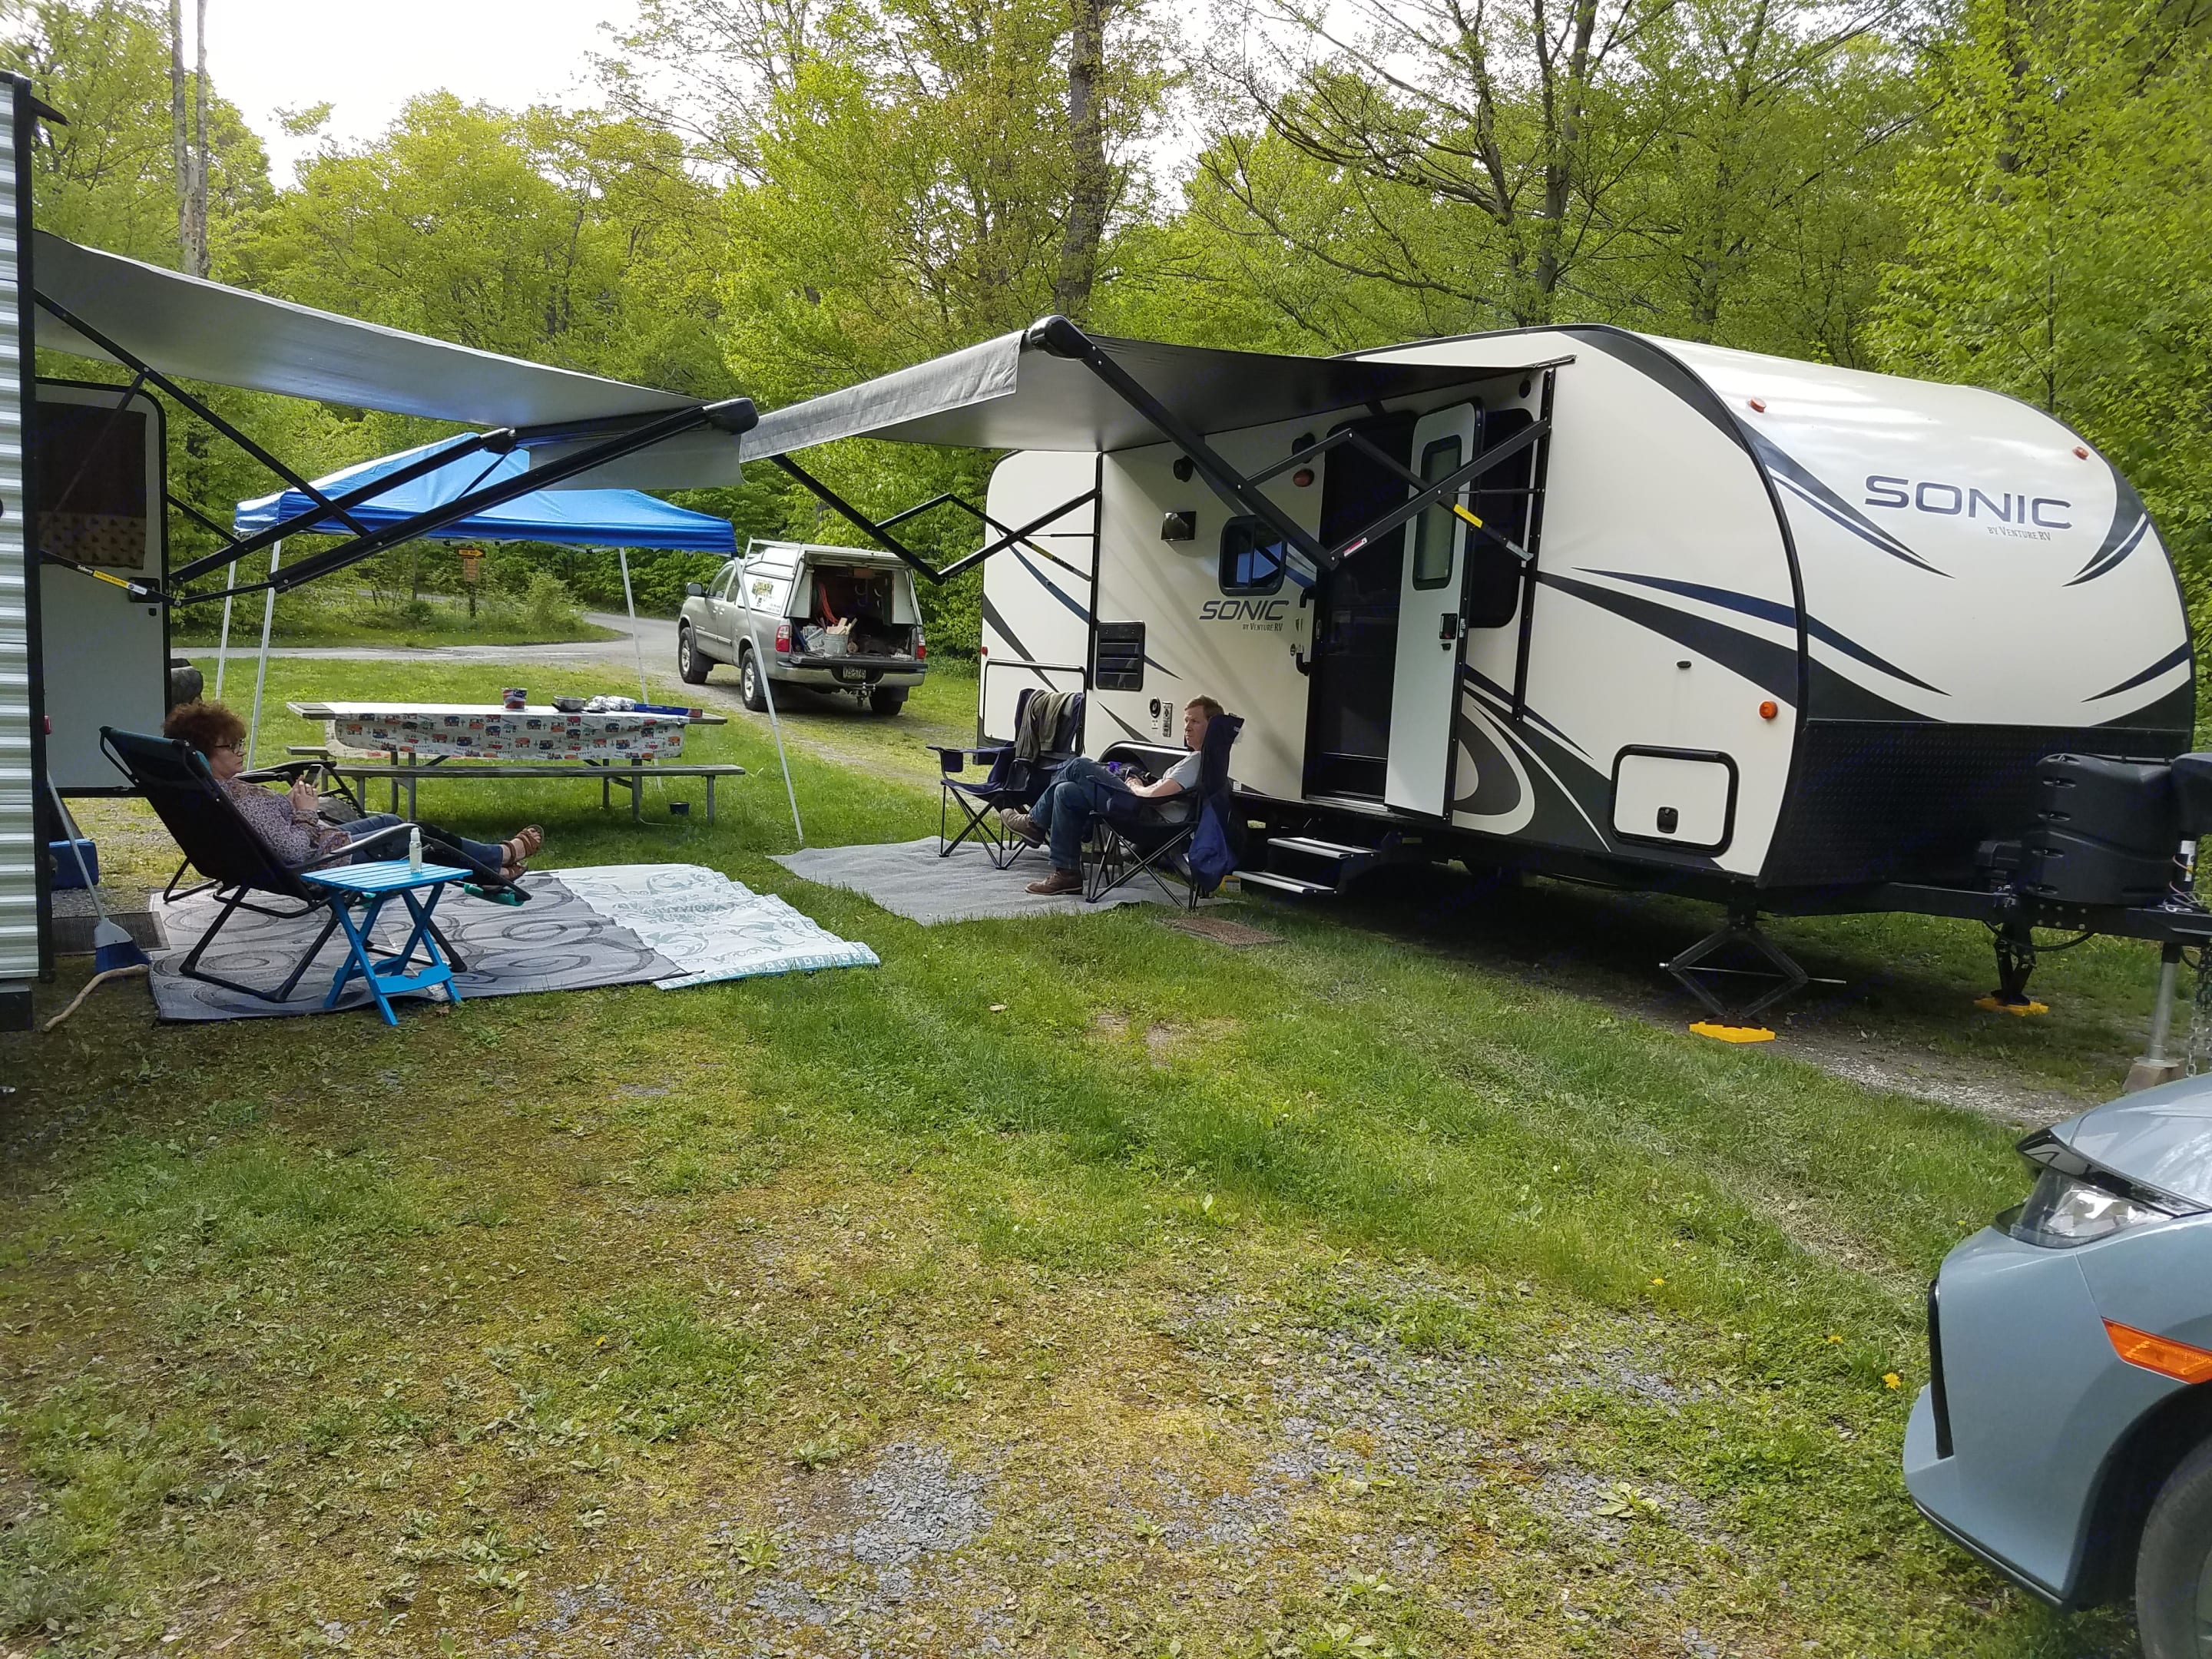 Easy Campering at its finest!. Venture Rv Sonic 2018